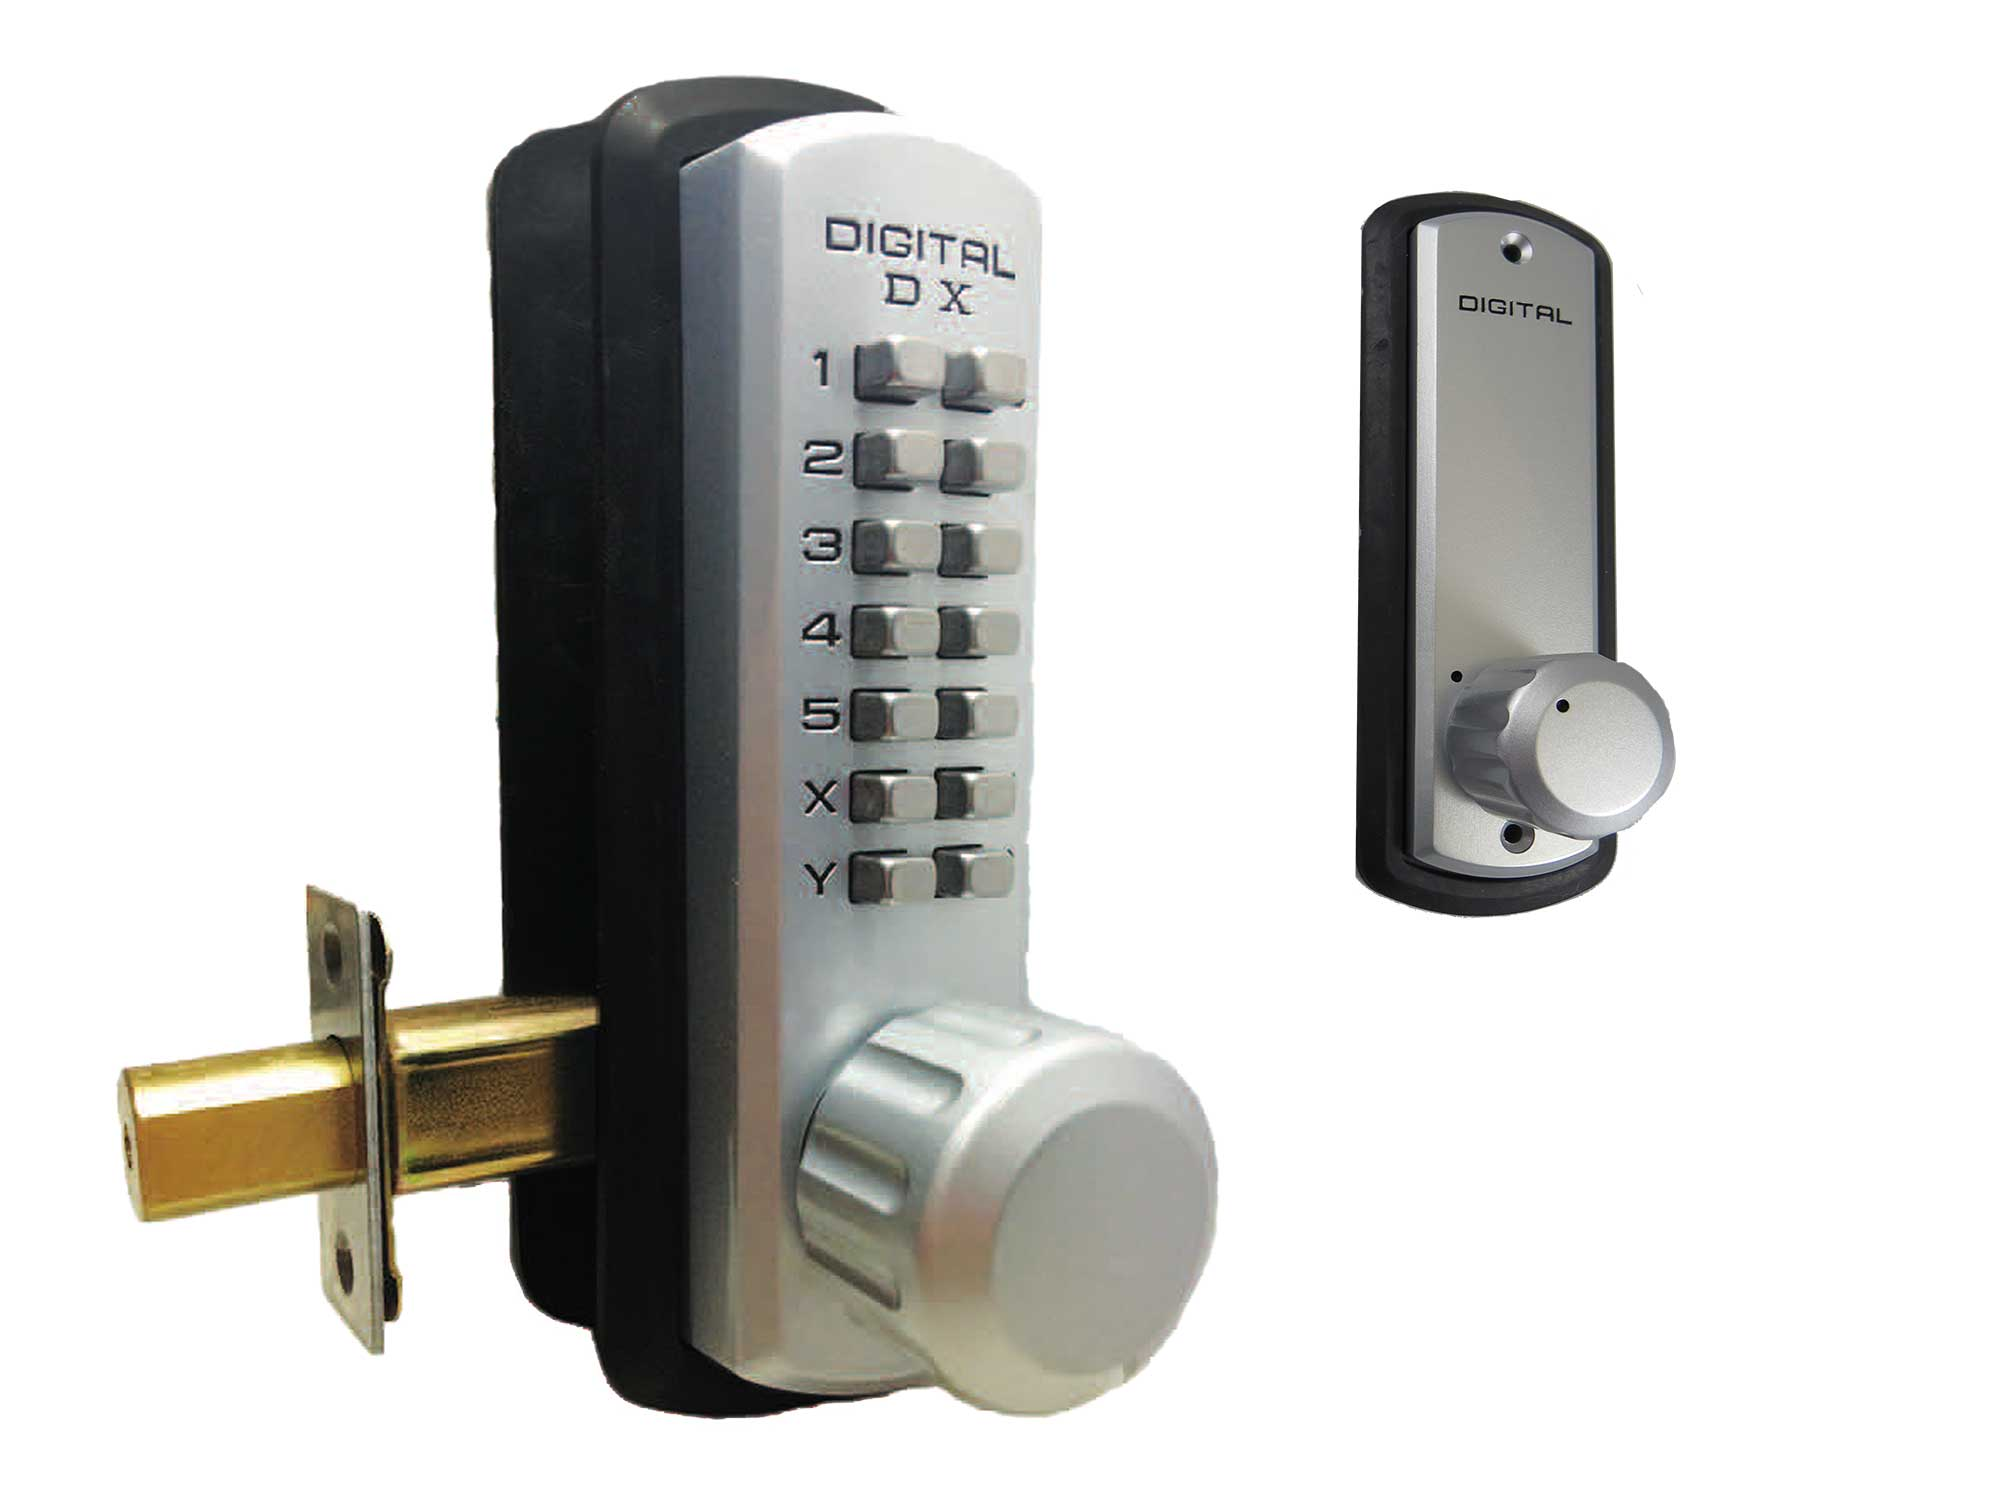 Lockey 3210 Marine-Grade Deadbolt Keypad Lock